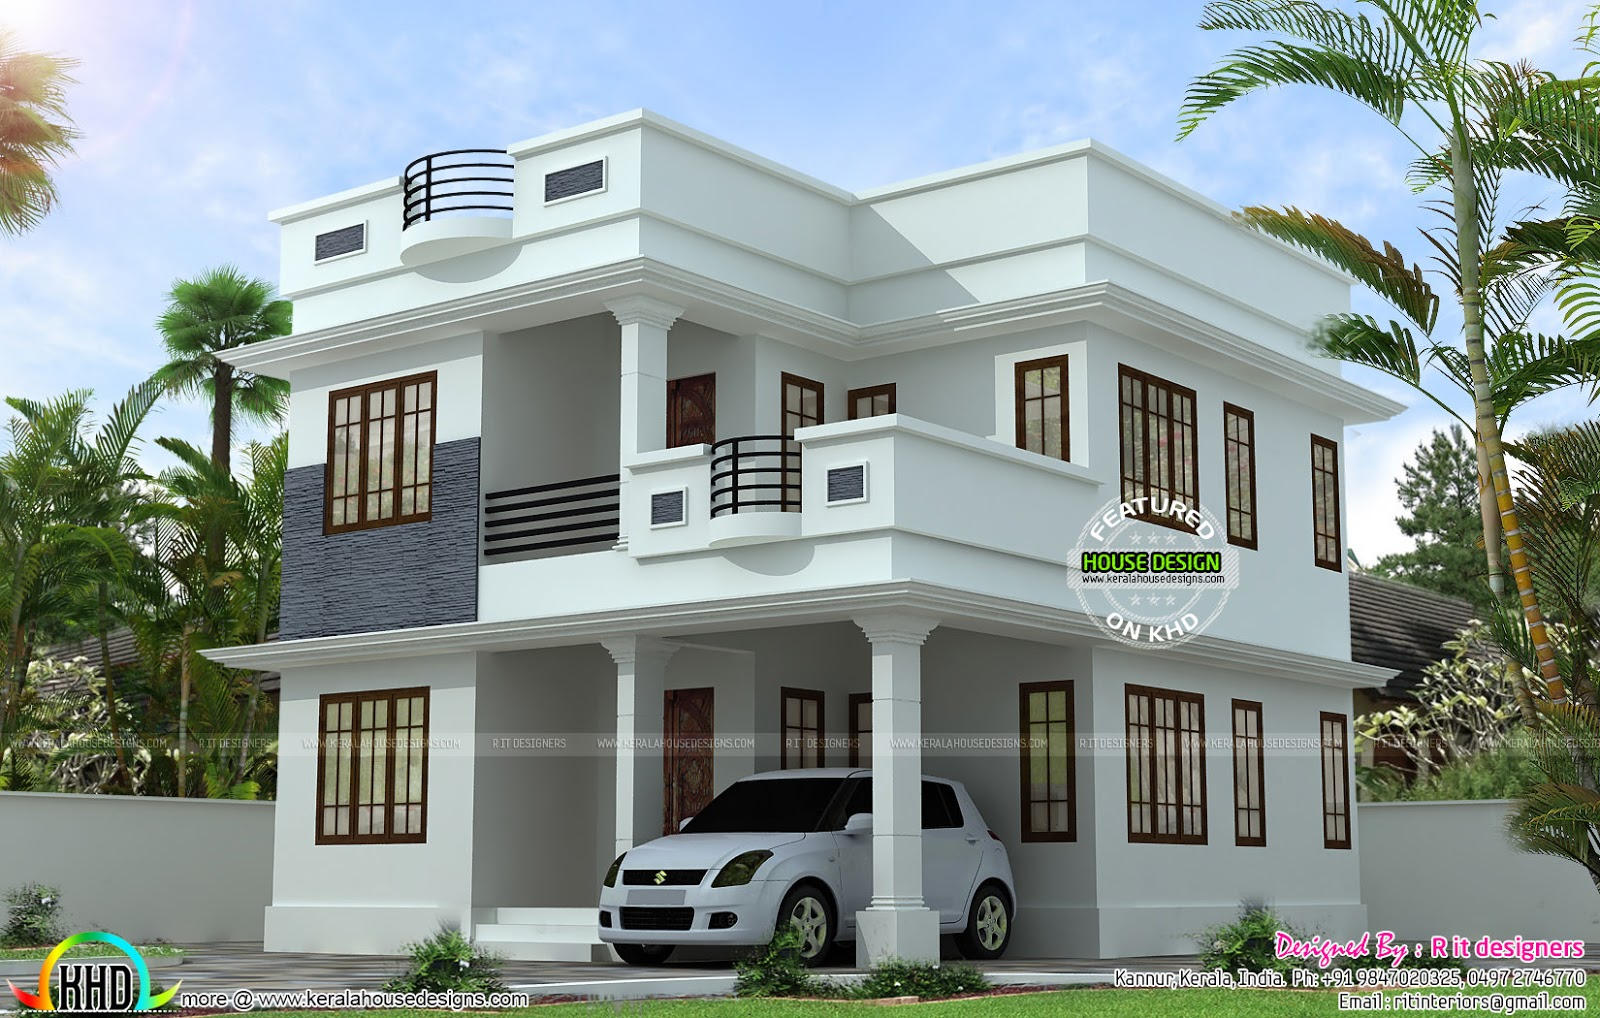 neat simple home design - 19+ Simple Small House Design And Floor Plan PNG